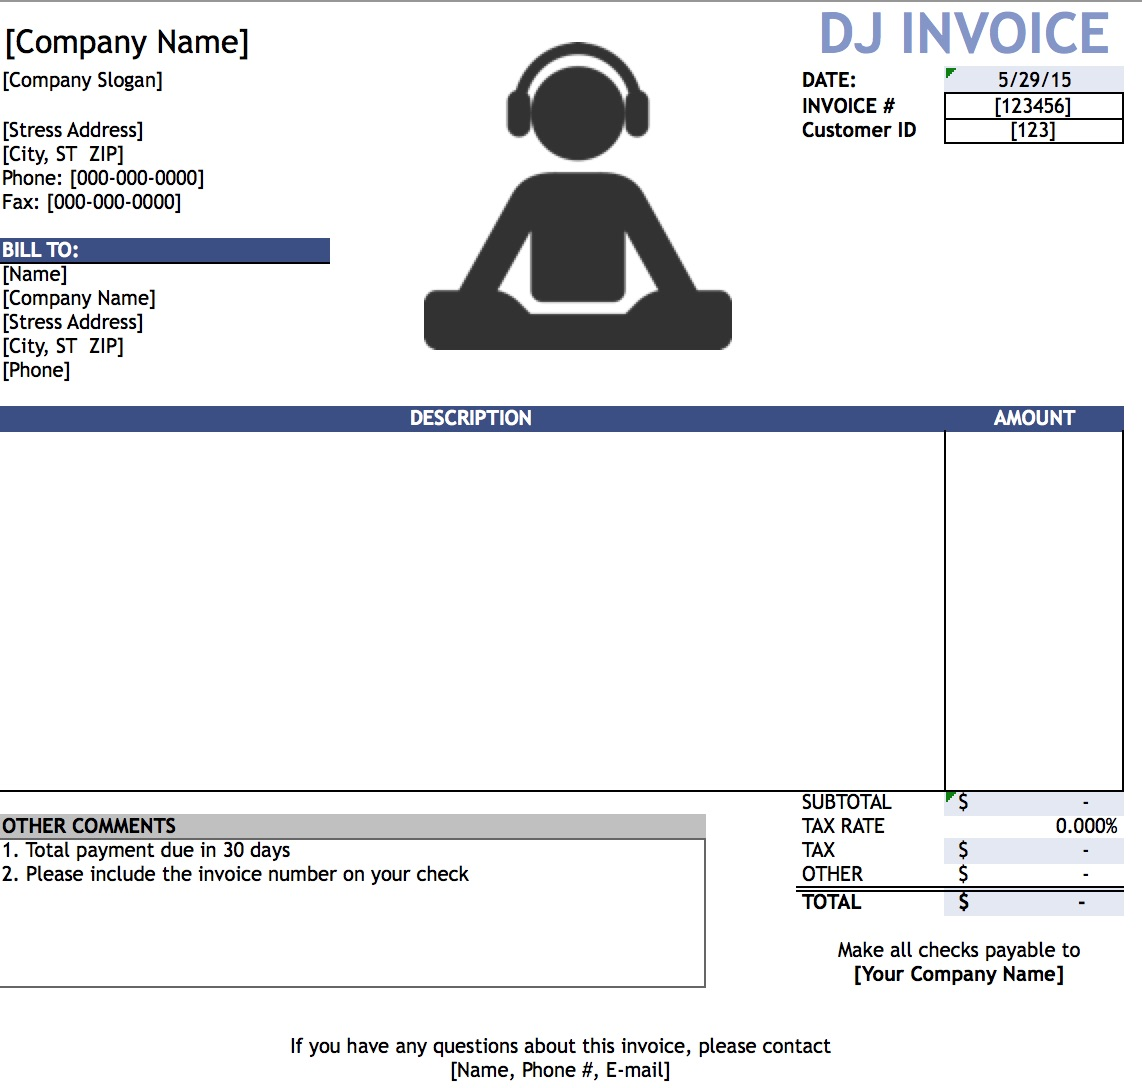 Free DJ Disc Jockey Invoice Template Excel PDF Word Doc - Free invoice creator for service business